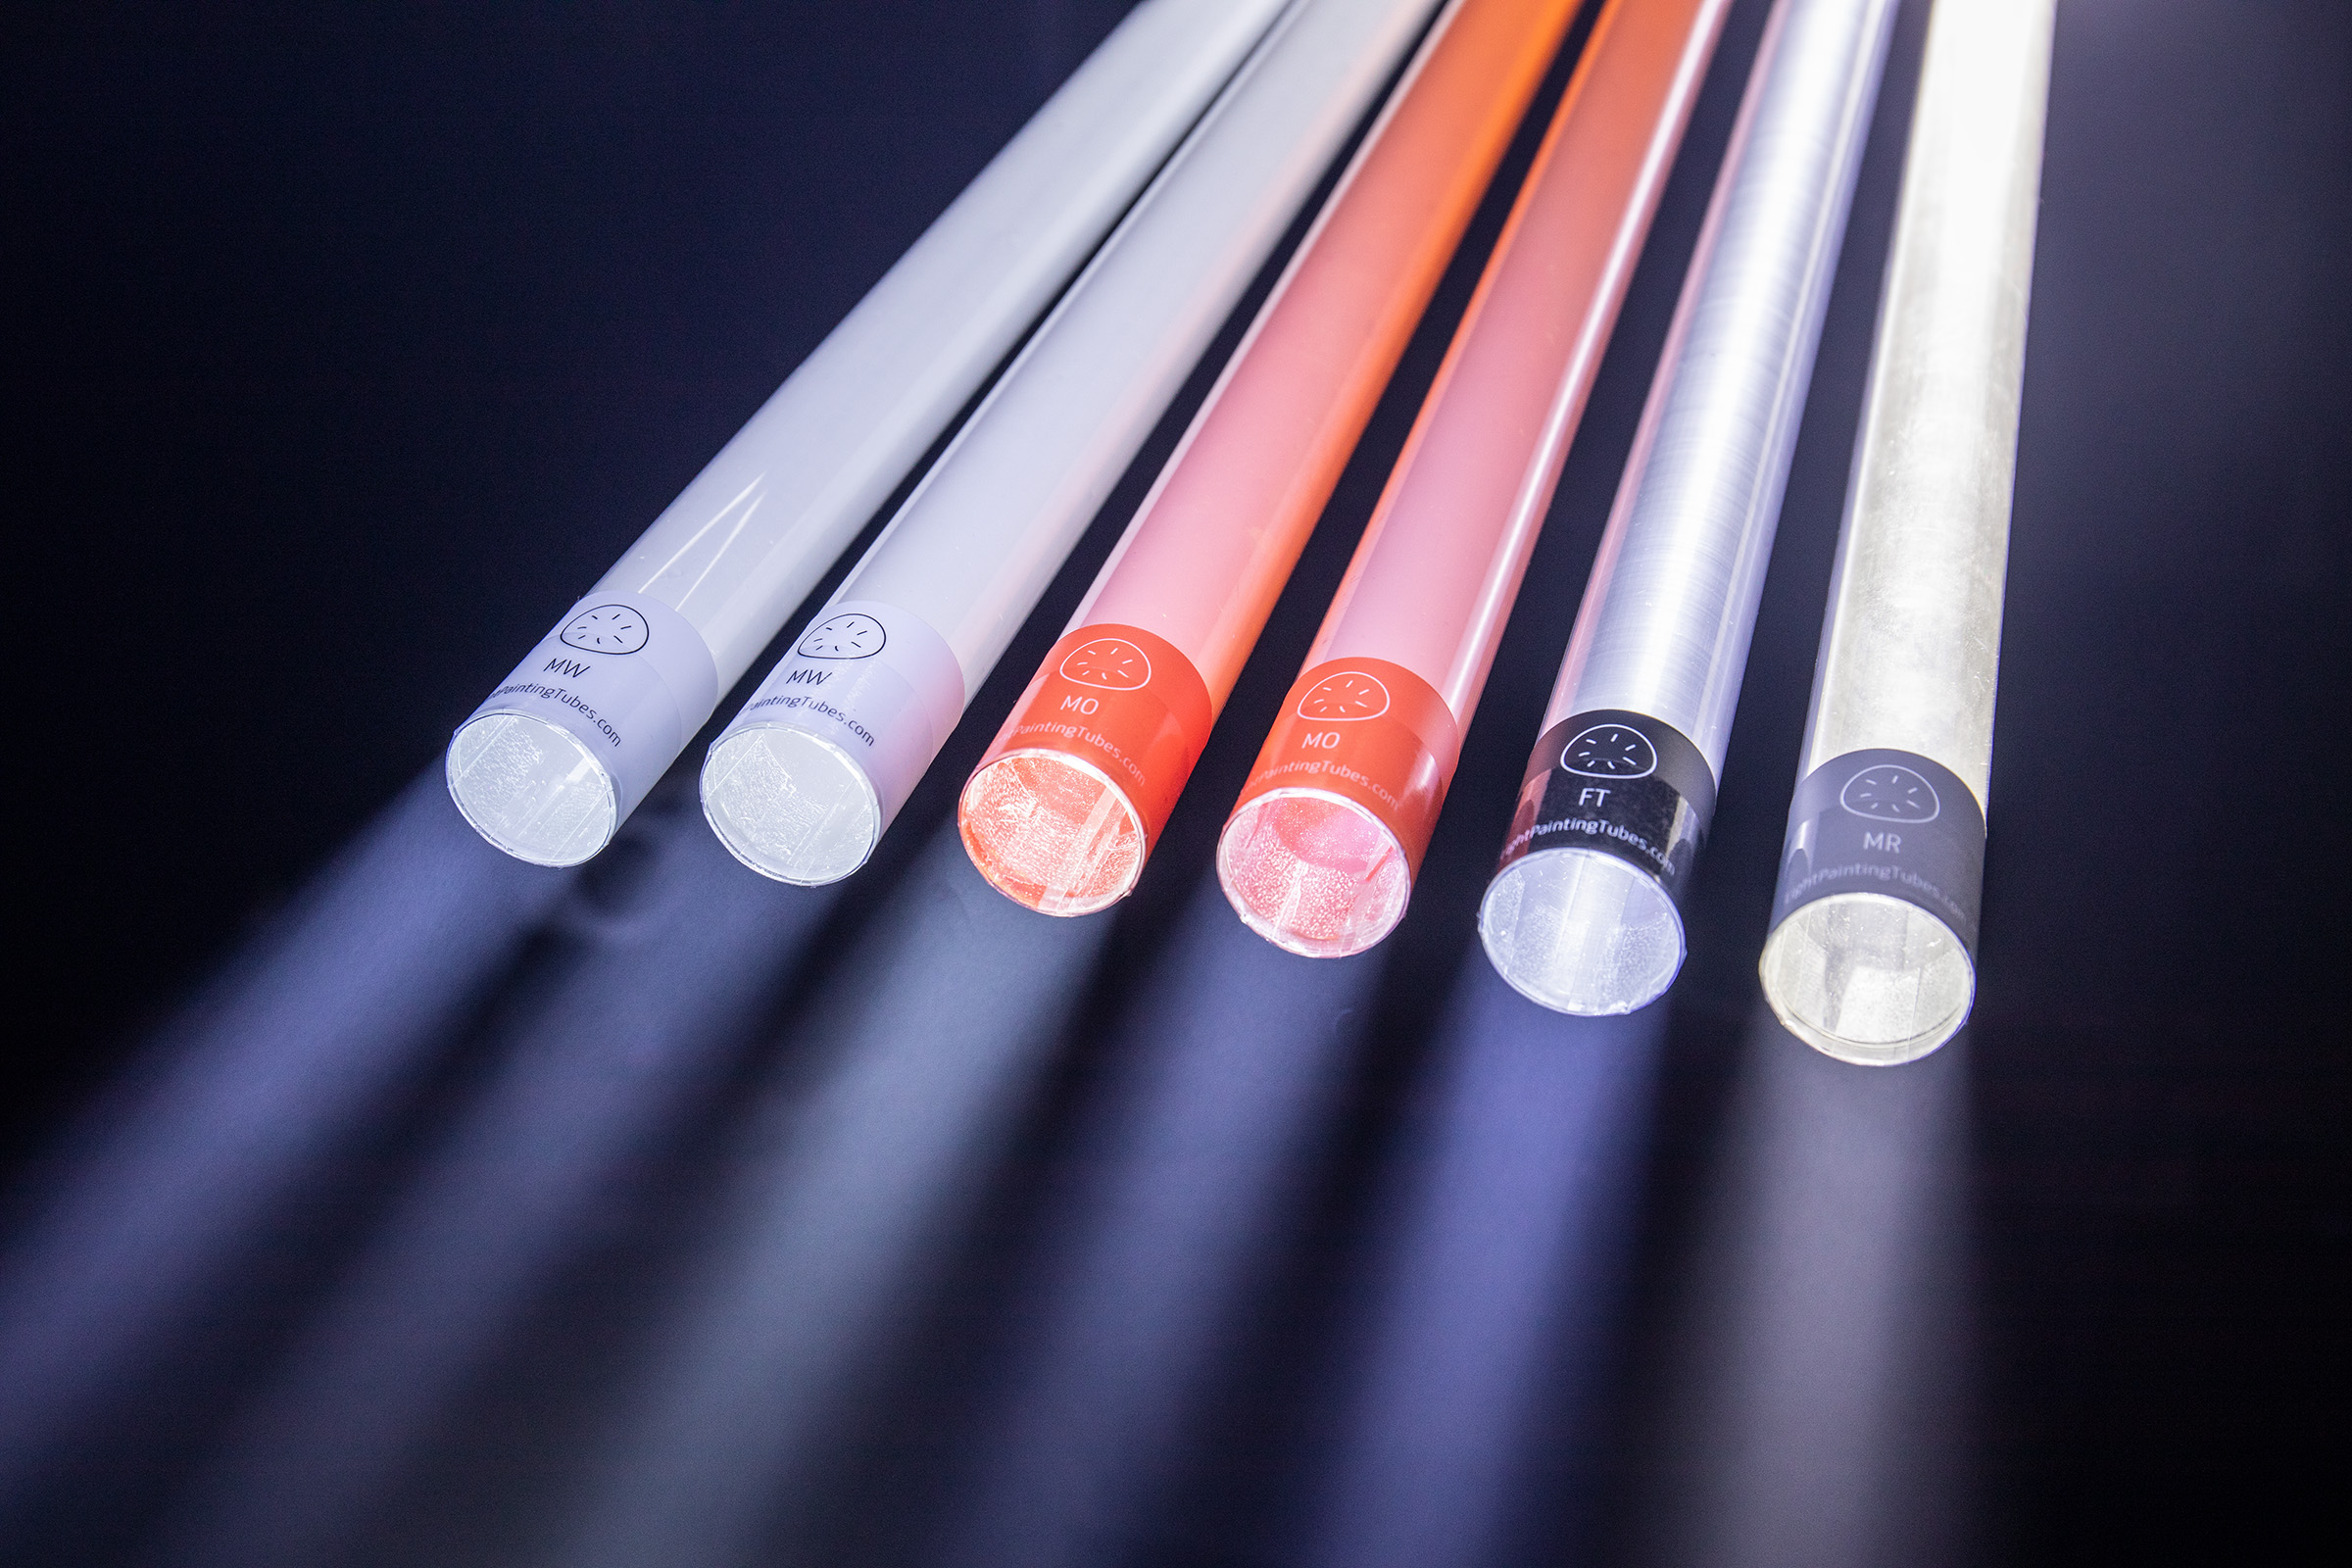 The light-painting tubes are available on  http://getTheTubes.com